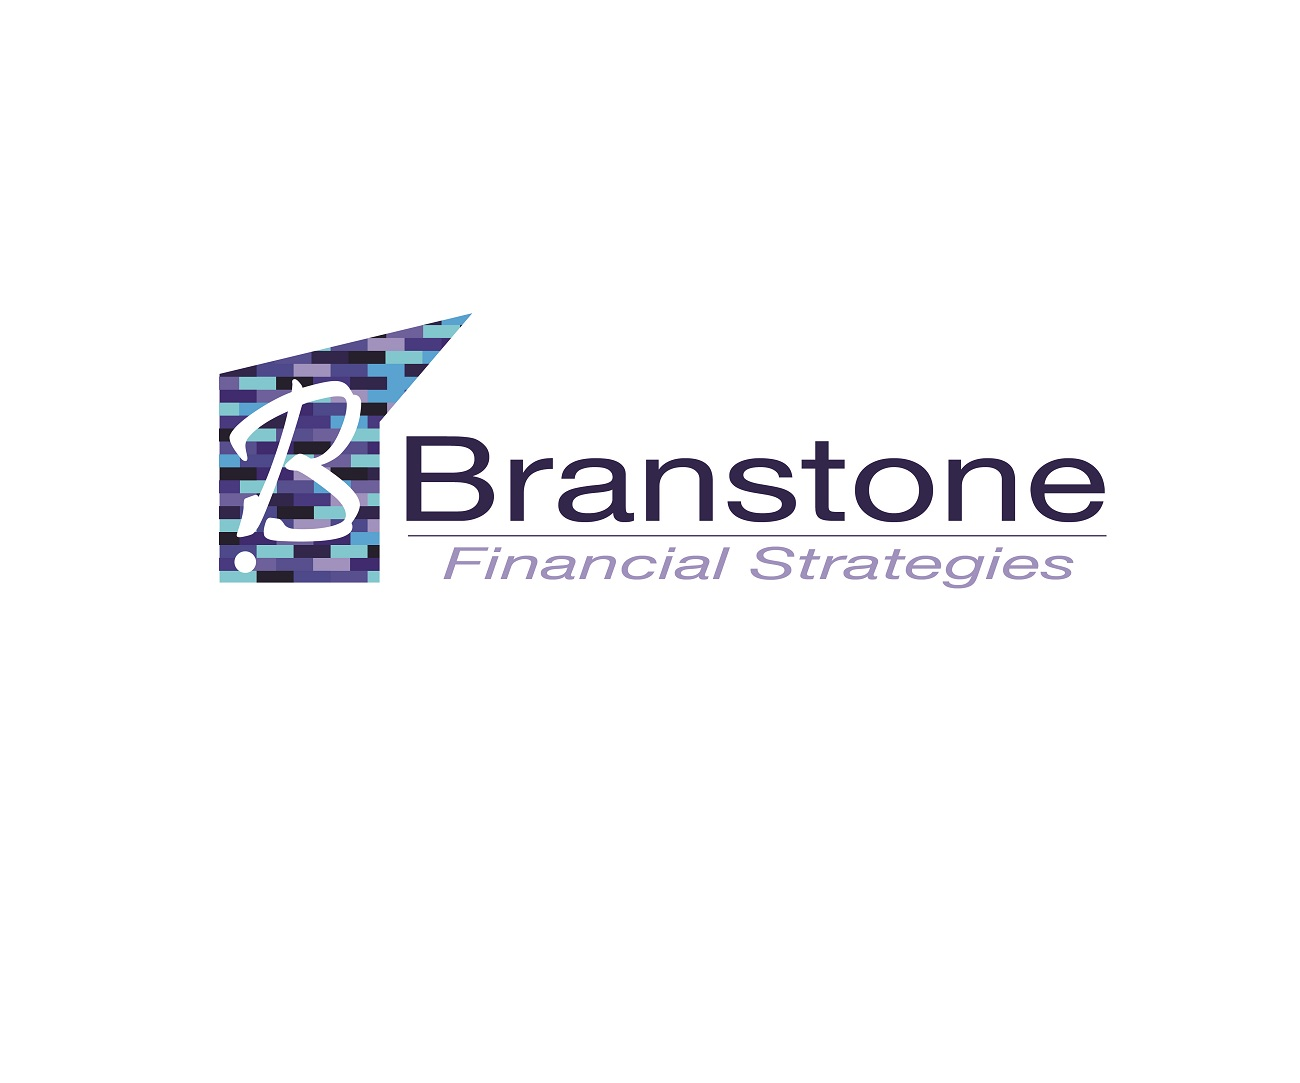 Logo Design by jhunzkie24 - Entry No. 70 in the Logo Design Contest Inspiring Logo Design for Branstone Financial Strategies.